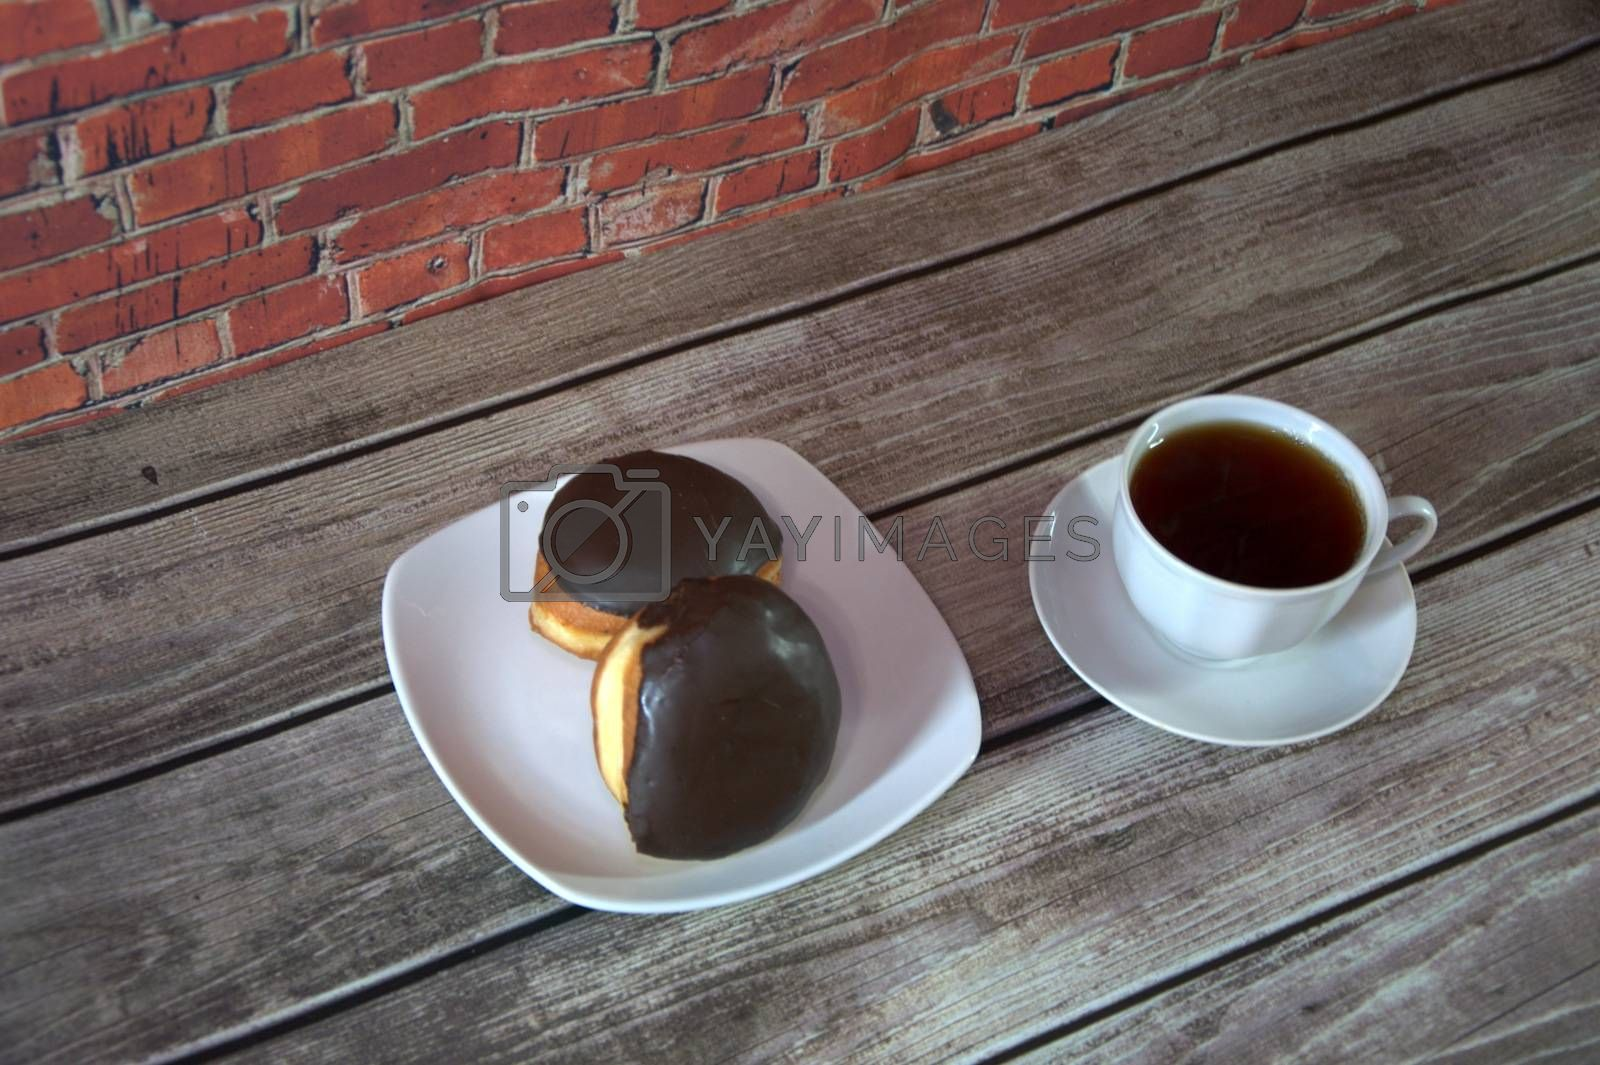 A cup of black tea on a saucer and a plate with two donuts in chocolate icing lie on a wooden table against a brick wall. Close-up. by Alex Yellow